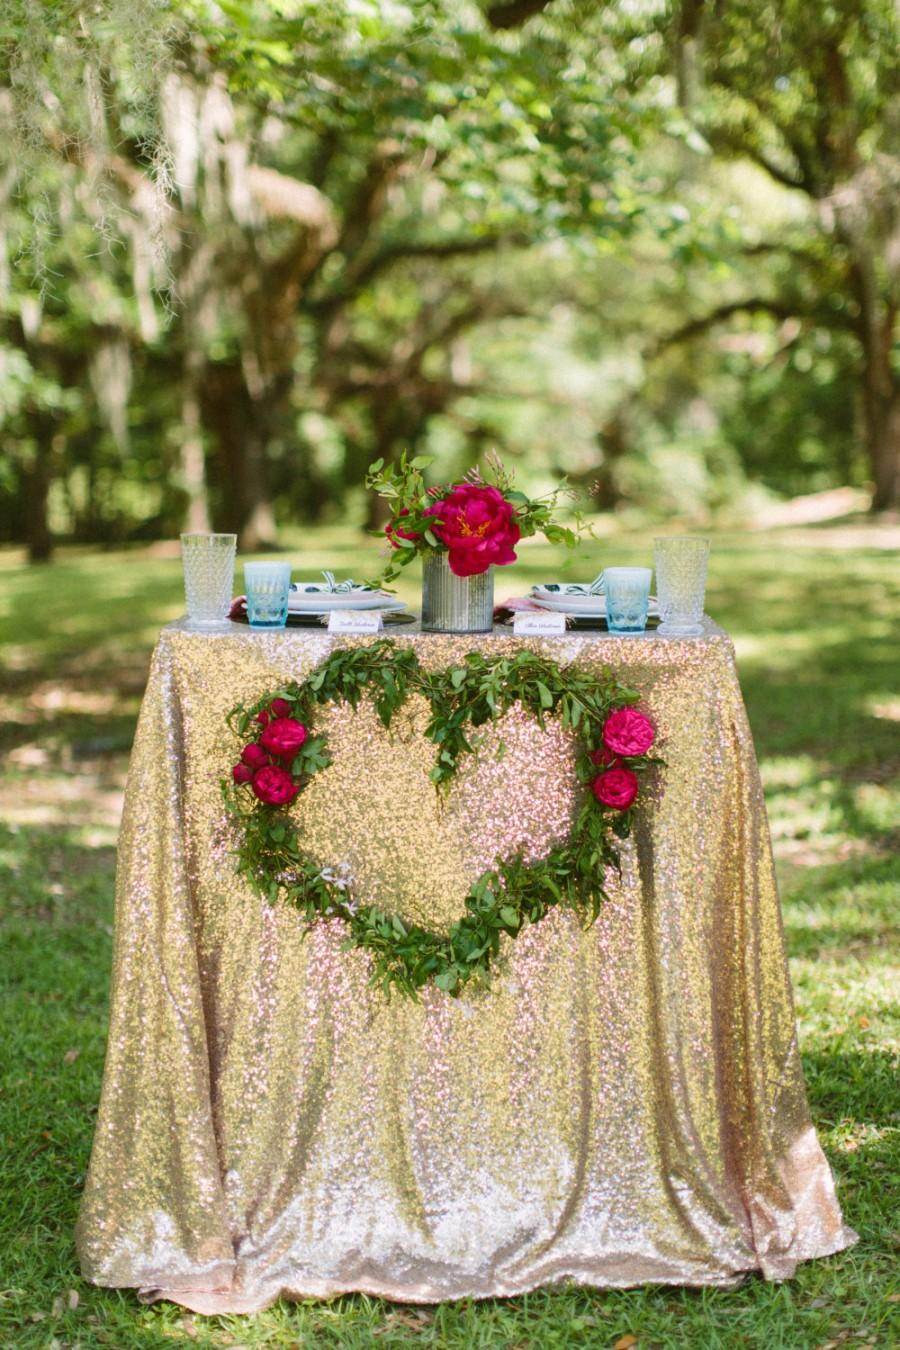 Warm Gold Sequin Tablecloth For Retro Wedding And Events Custom Sparkle Table Cloths Tablecloths Runners Overlays